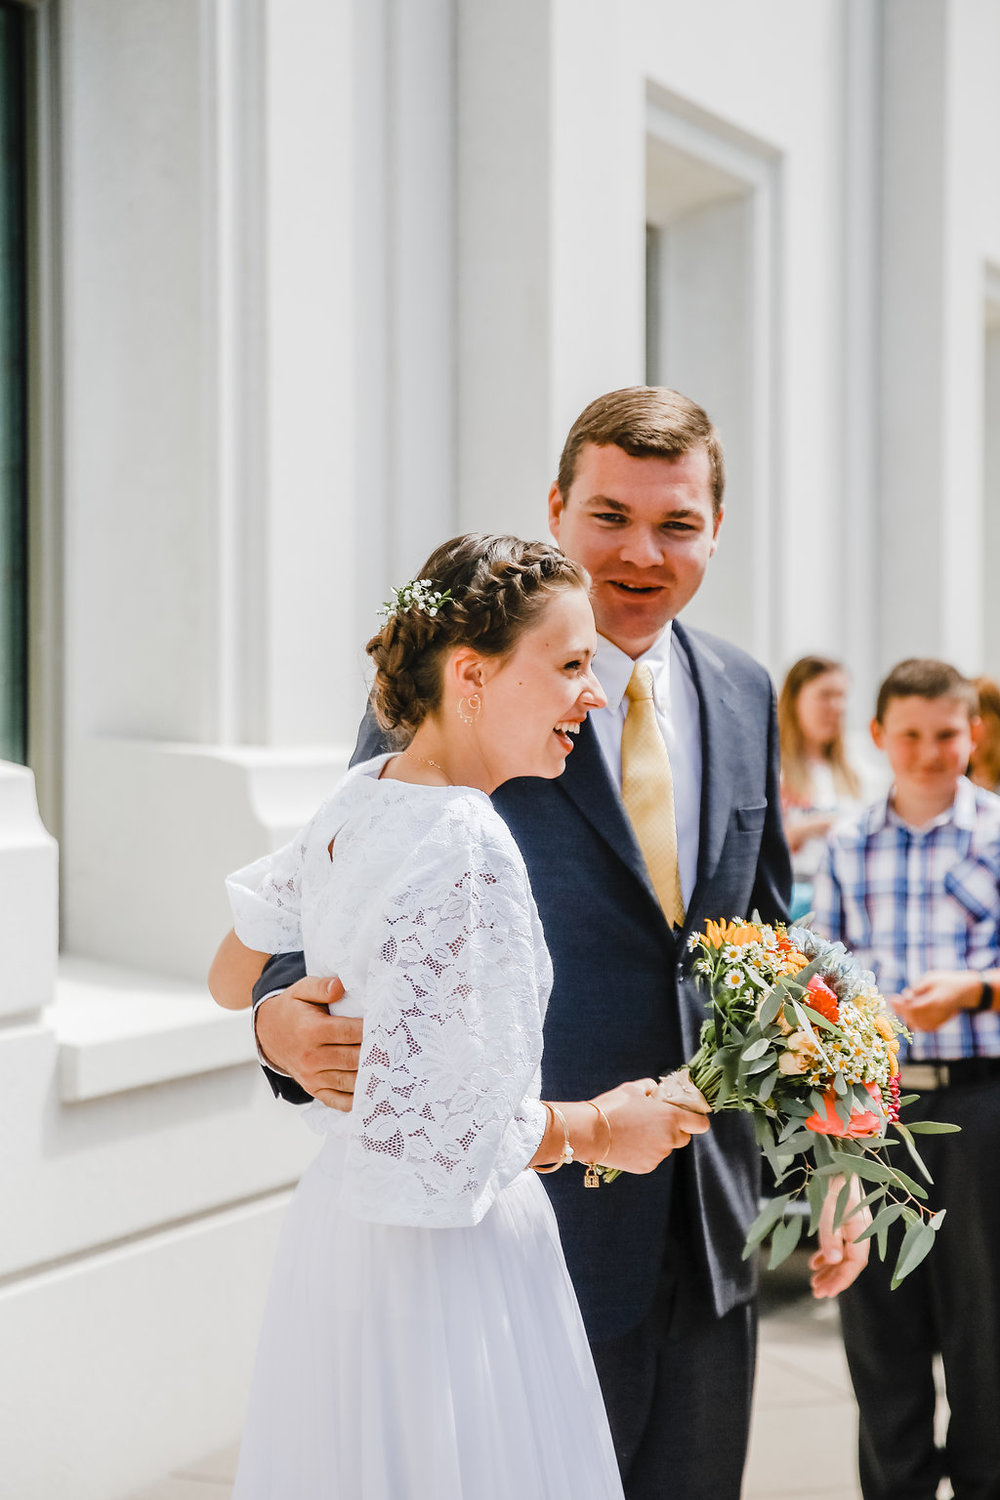 wedding day photographer calli richards at the brigham city lds temple northern utah